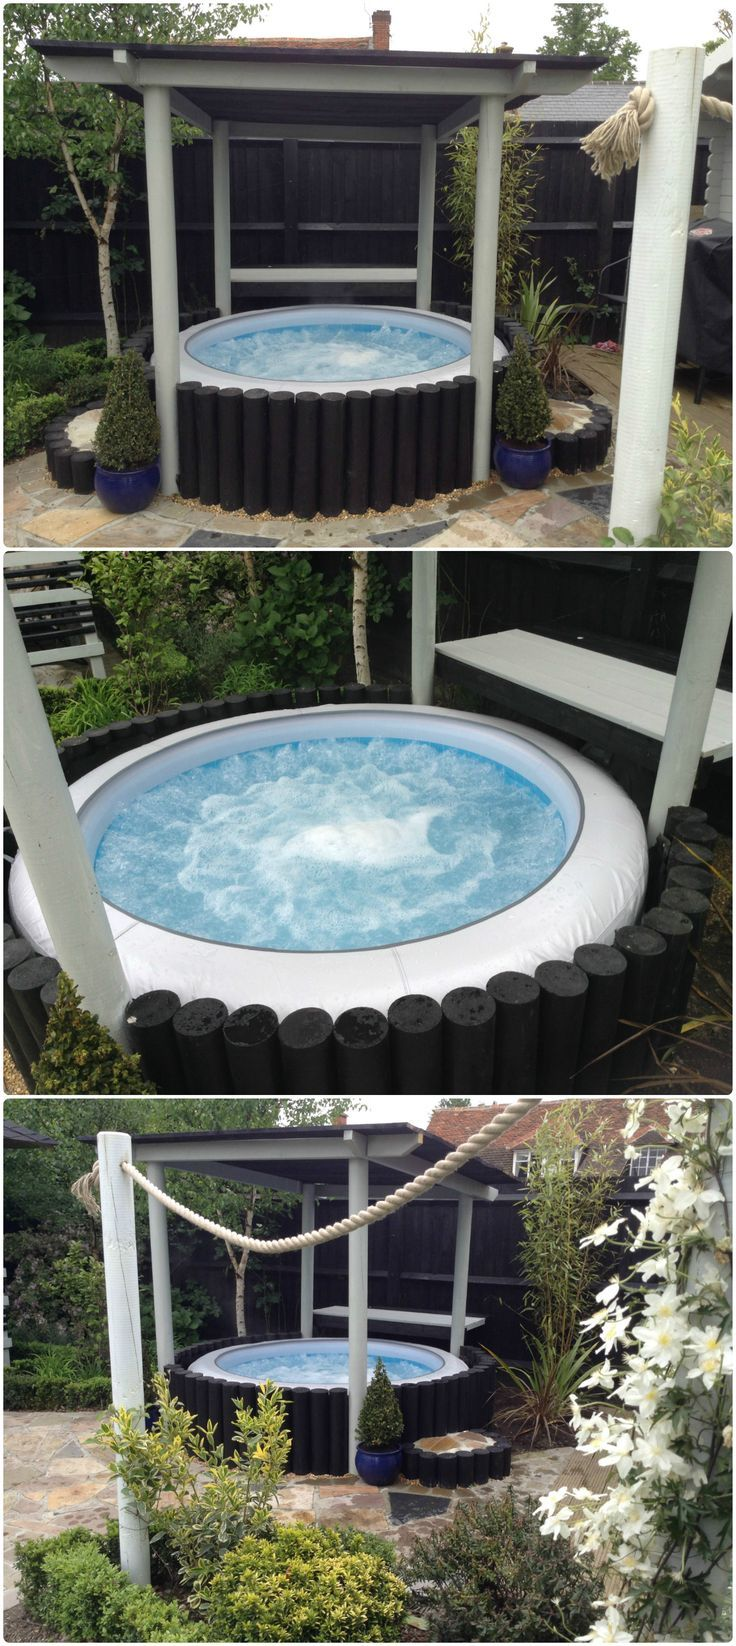 Top 25 best jacuzzi gonflable ideas on pinterest maison gonflable piscine - Jacuzzi exterieur 4 places ...